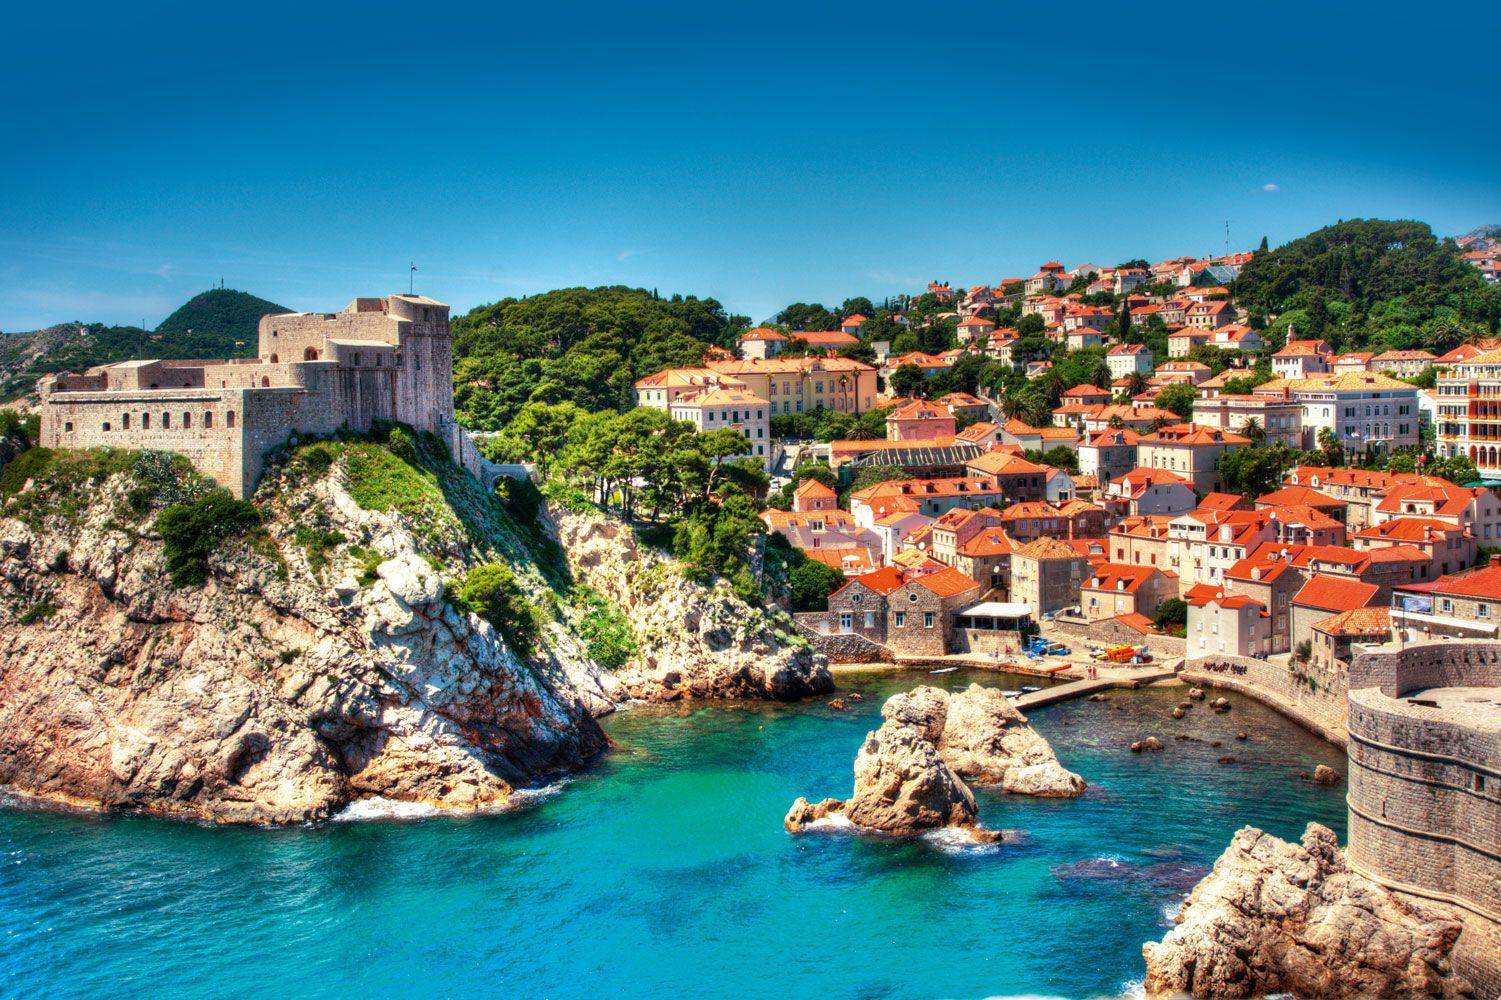 Dubrovnik Wallpapers Pack, by Taylor Savage, June 1, 2015